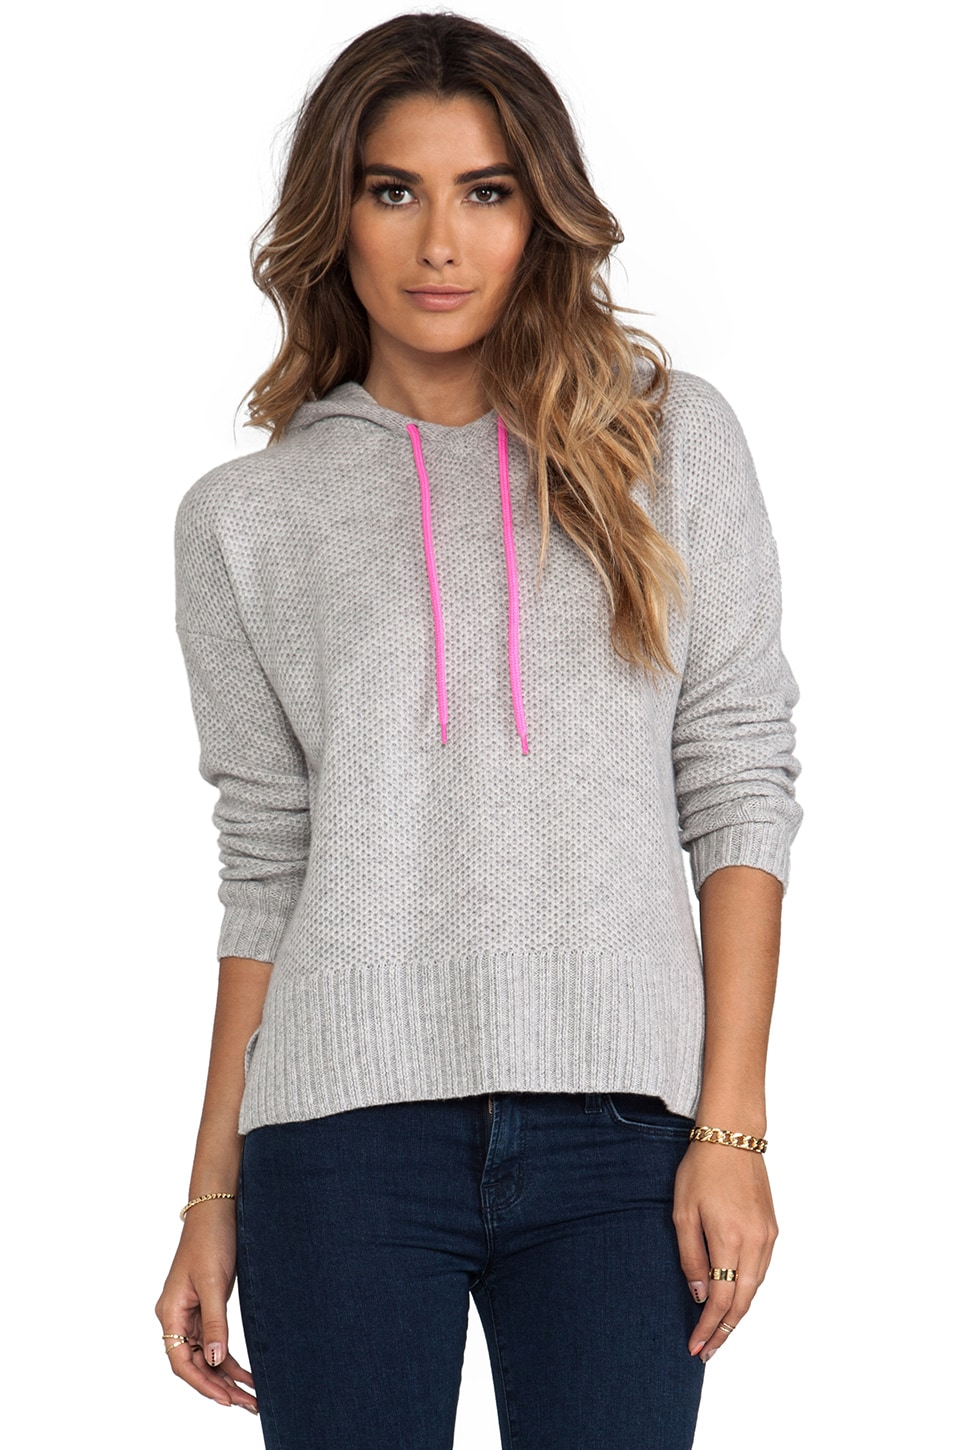 Autumn Cashmere Honeycomb Stitch Hoodie in Fog & Shock